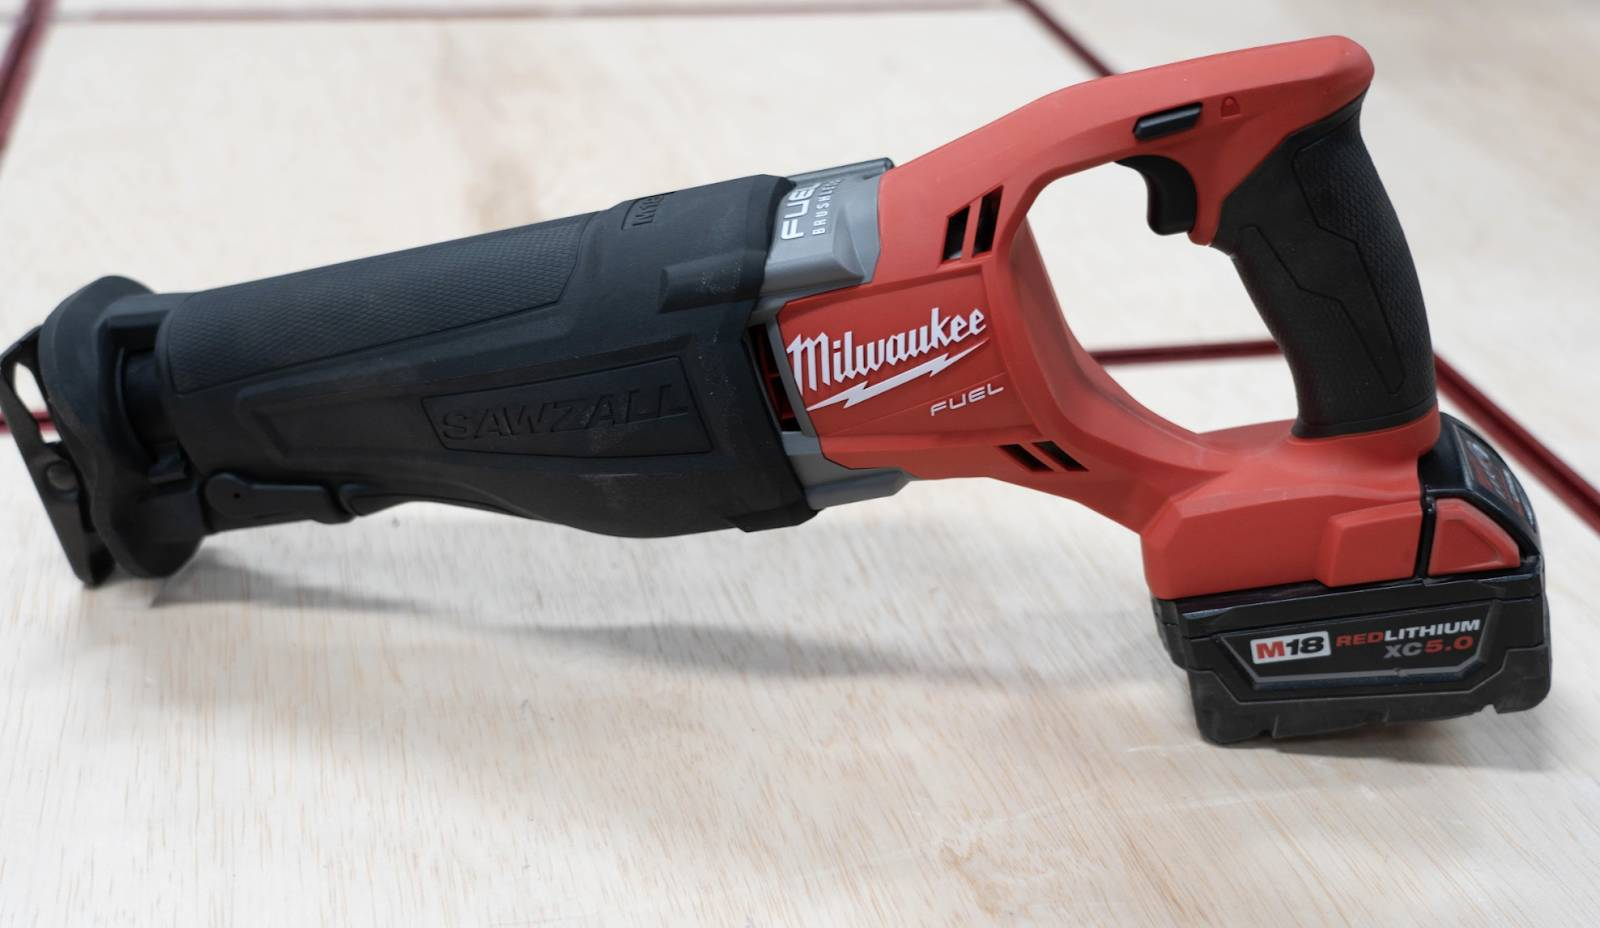 Milwaukee M18 FUEL Cordless SAWZALL Reciprocating Saw on a wooden table